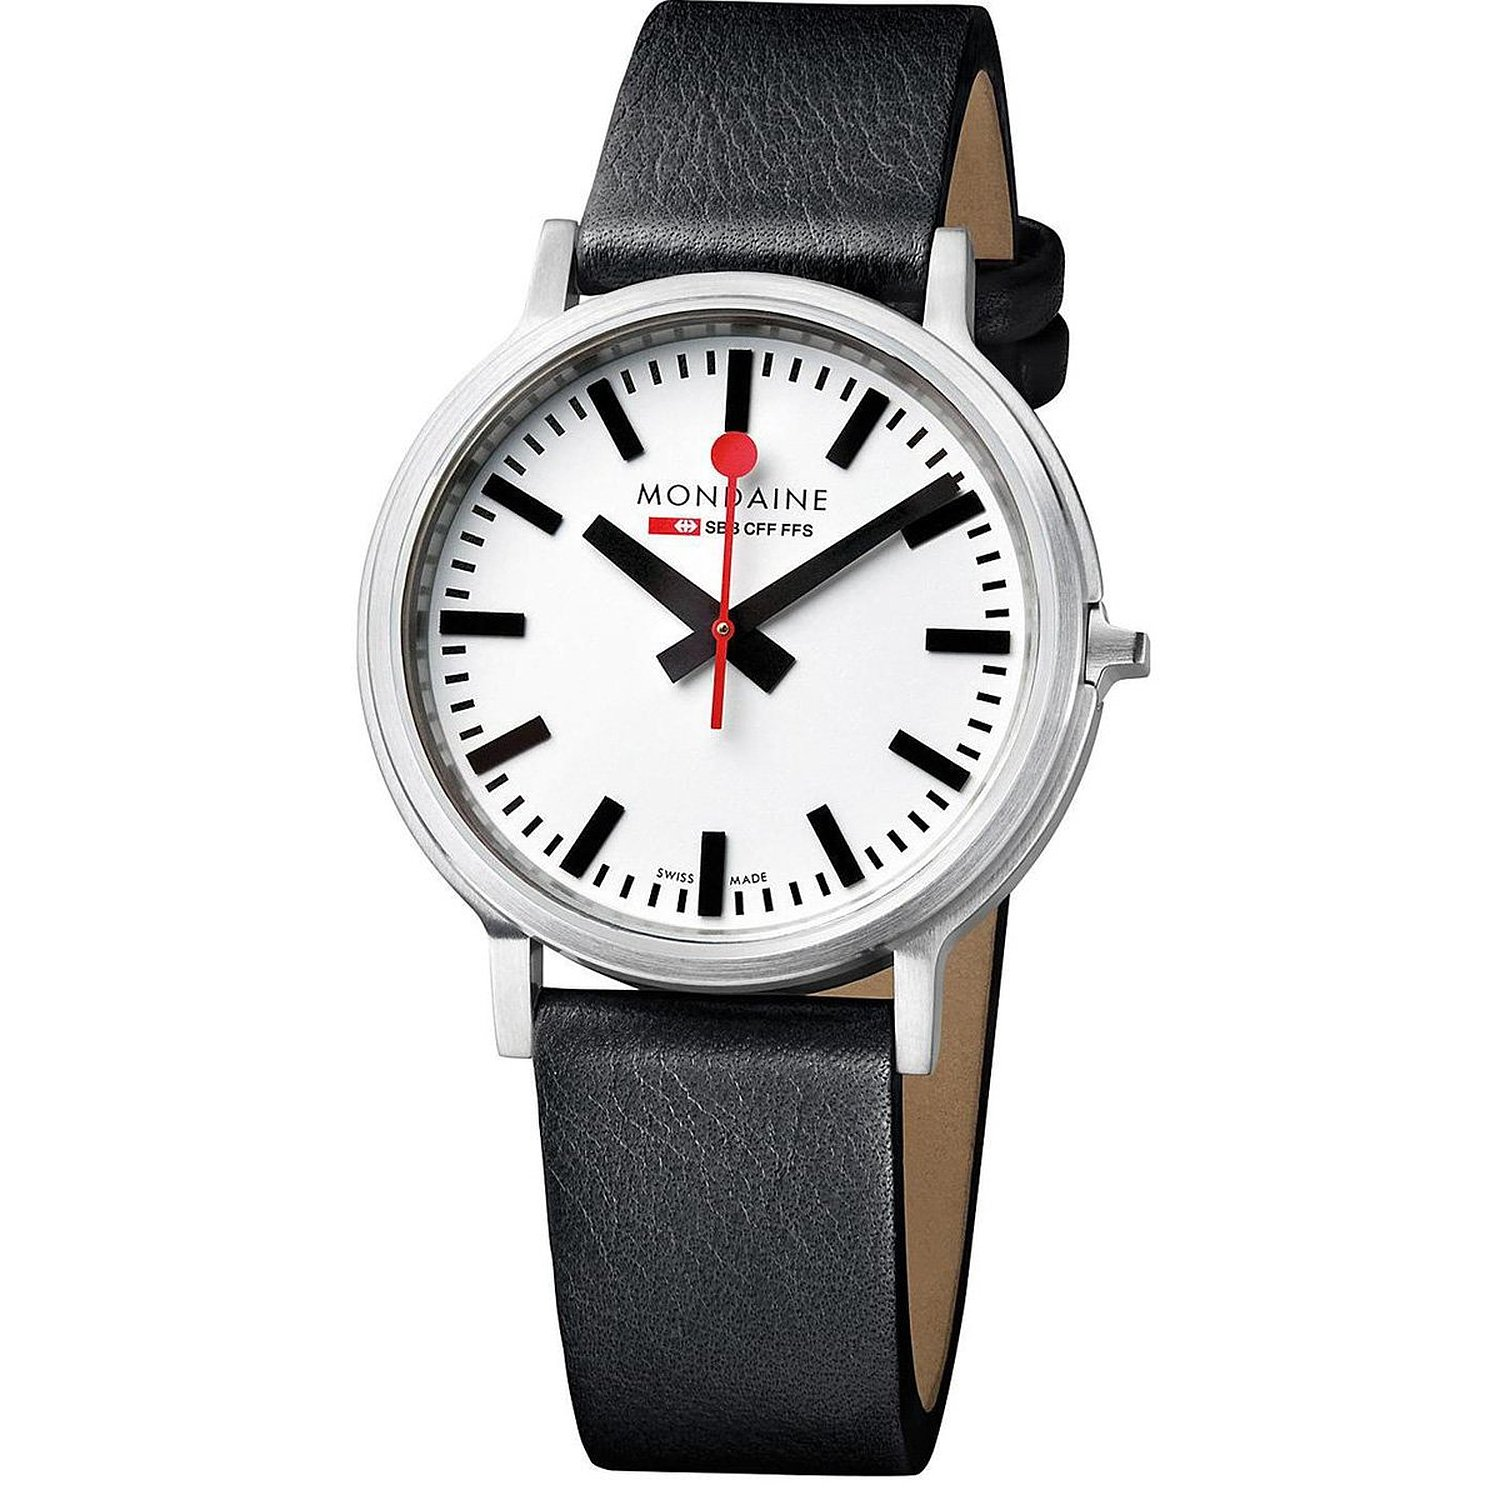 Mondaine Stop 2 Go Men's Quartz Watch with White Dial Analogue Display and Black Leather Strap A5123035816SBB